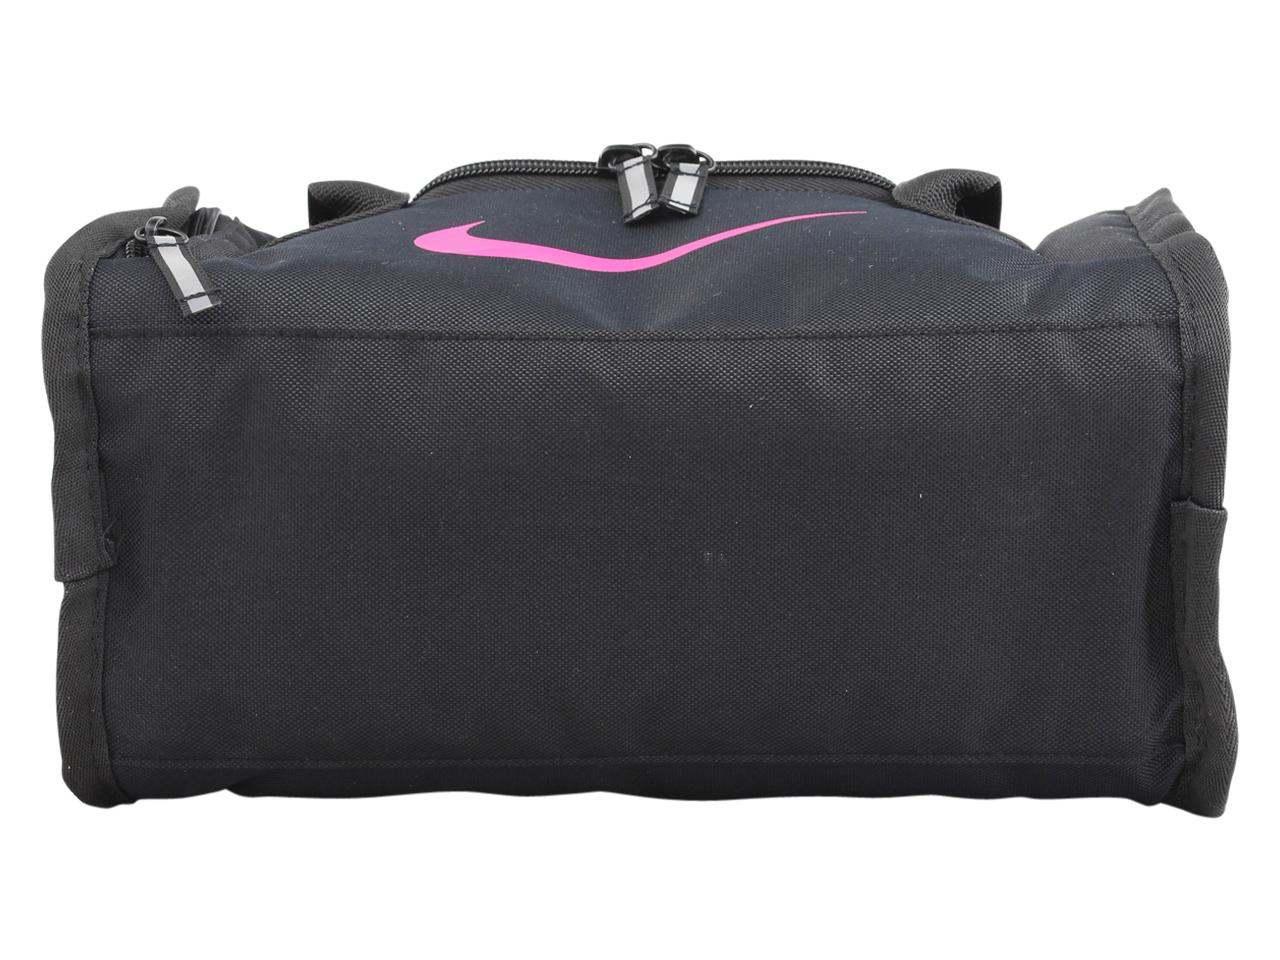 Nike-Deluxe-Insulated-Tote-Lunch-Bag thumbnail 14